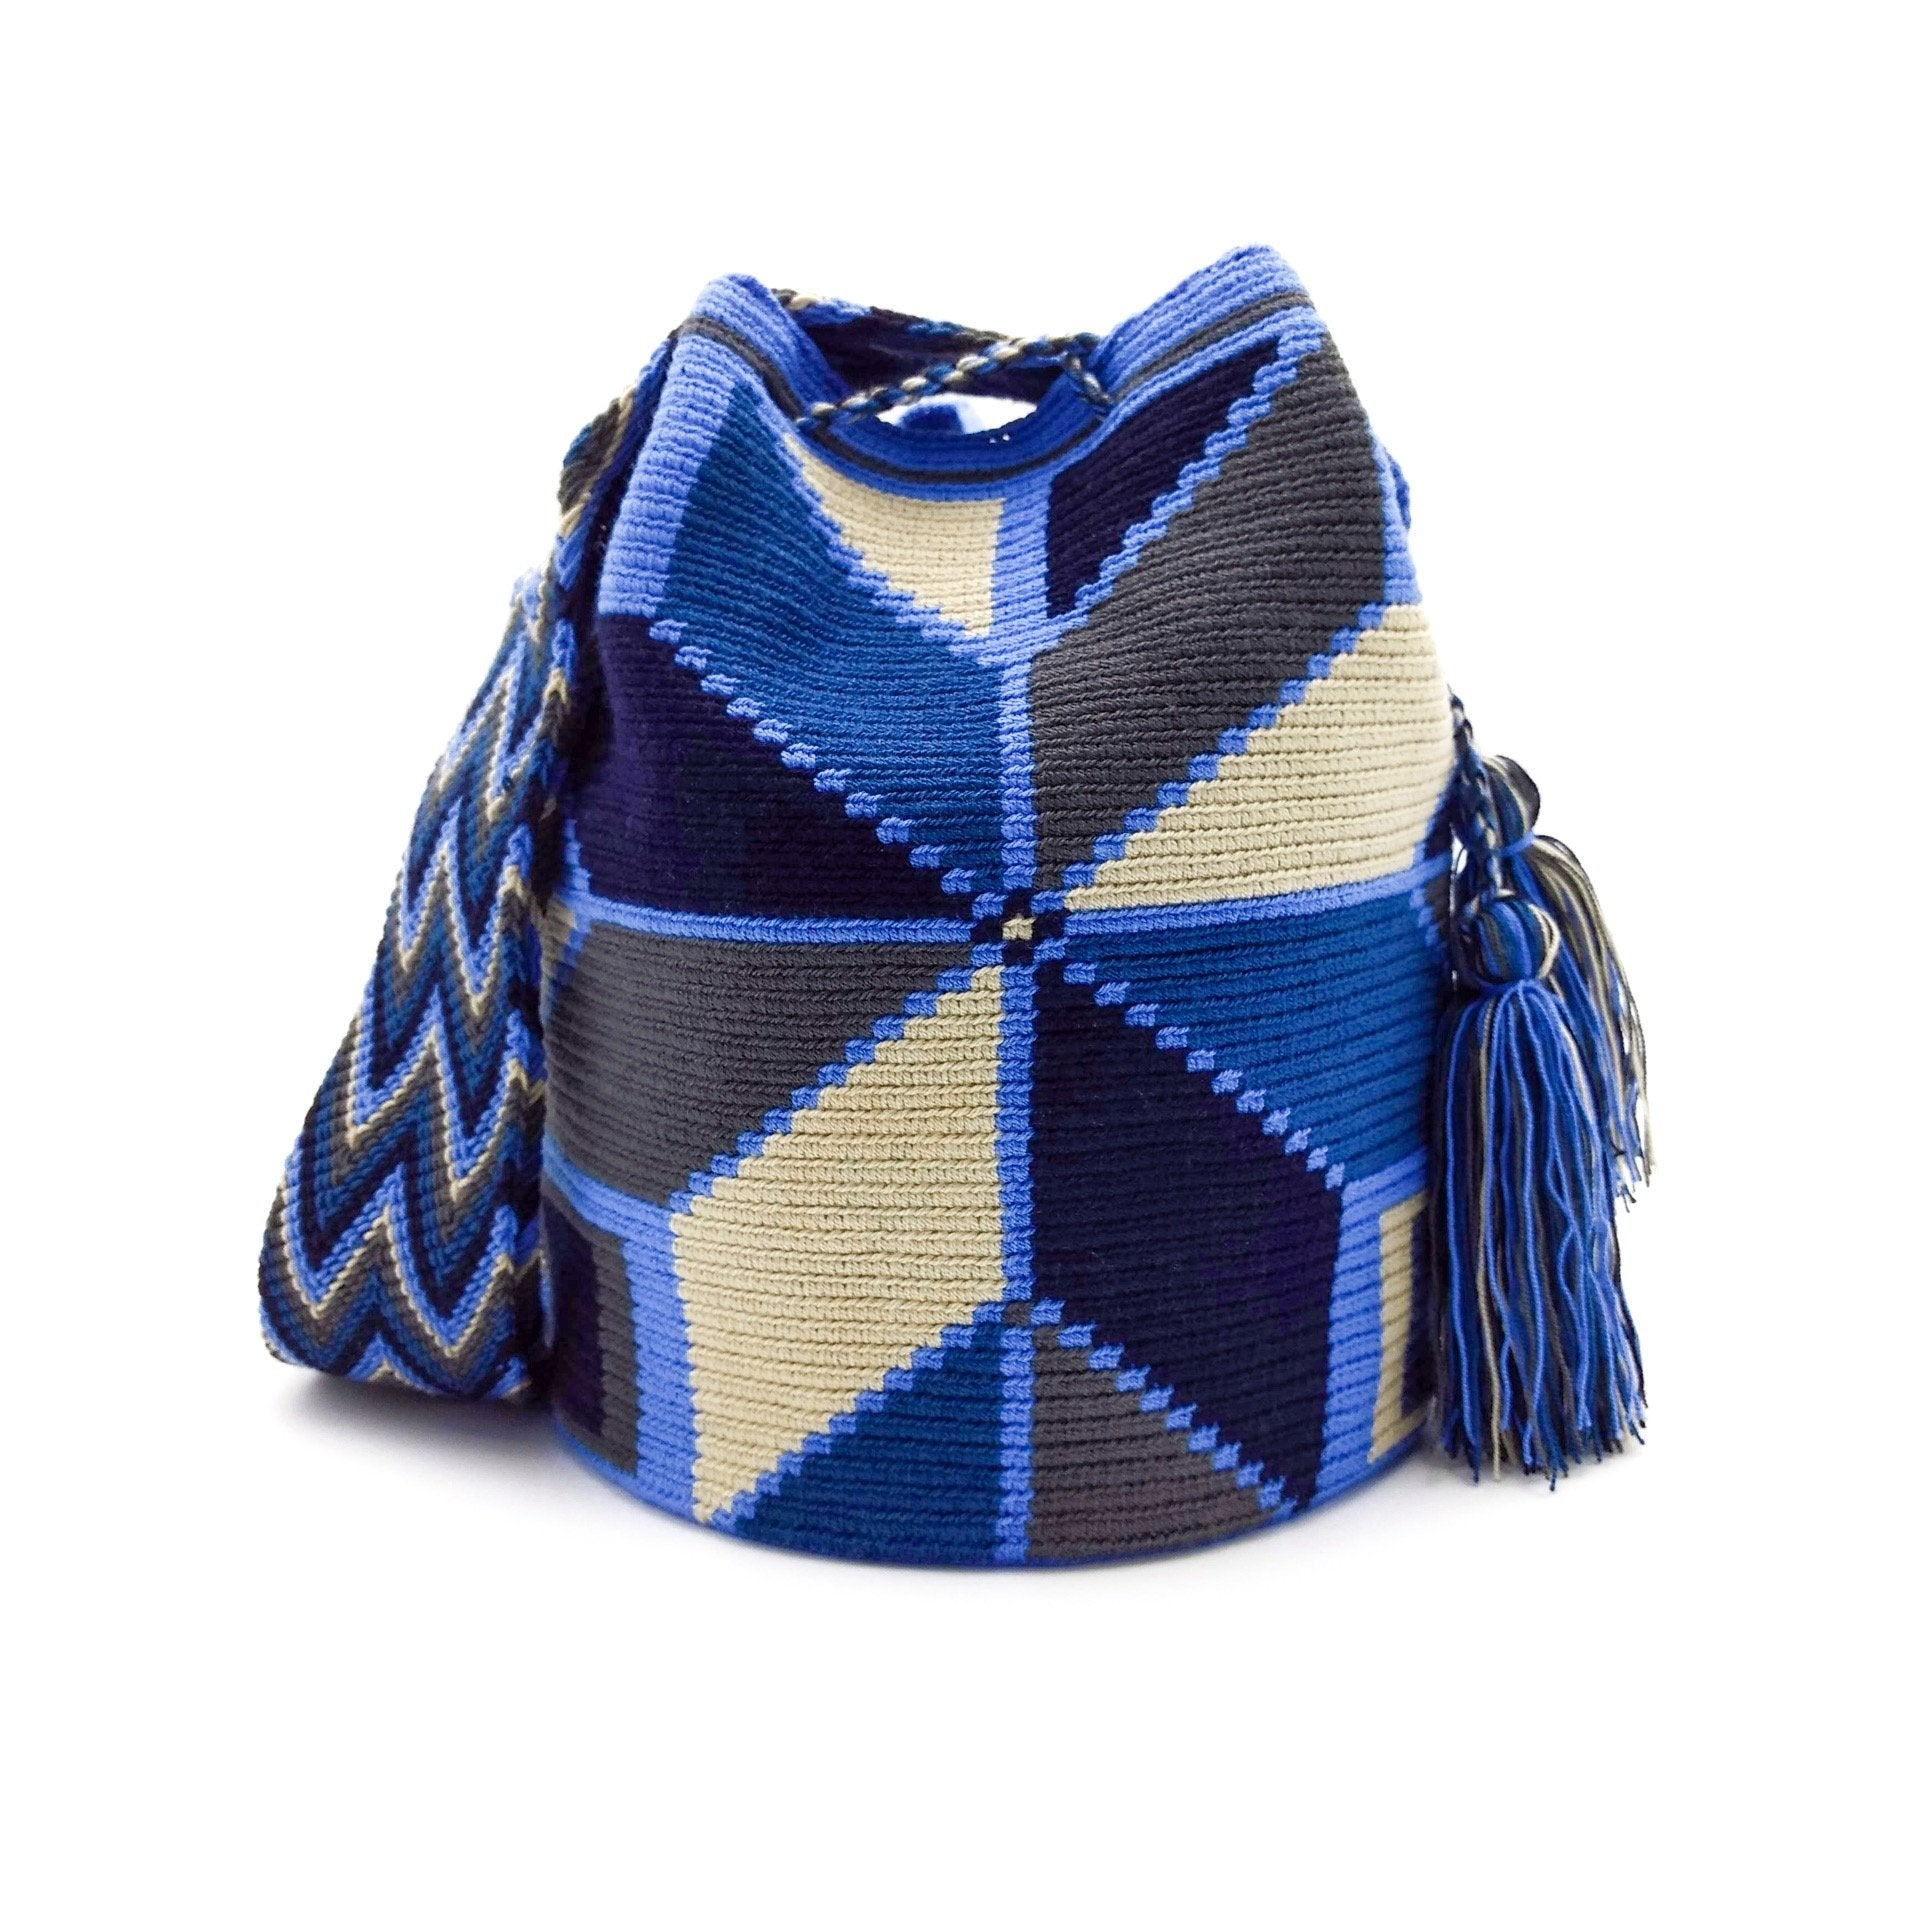 Front view of a Wayuu Mochila Bag with a geometrical pattern using an Eight Pointed Star, Rectangles and Triangles in a beautiful array of colors such as Azure Beige Gray Blue Black.